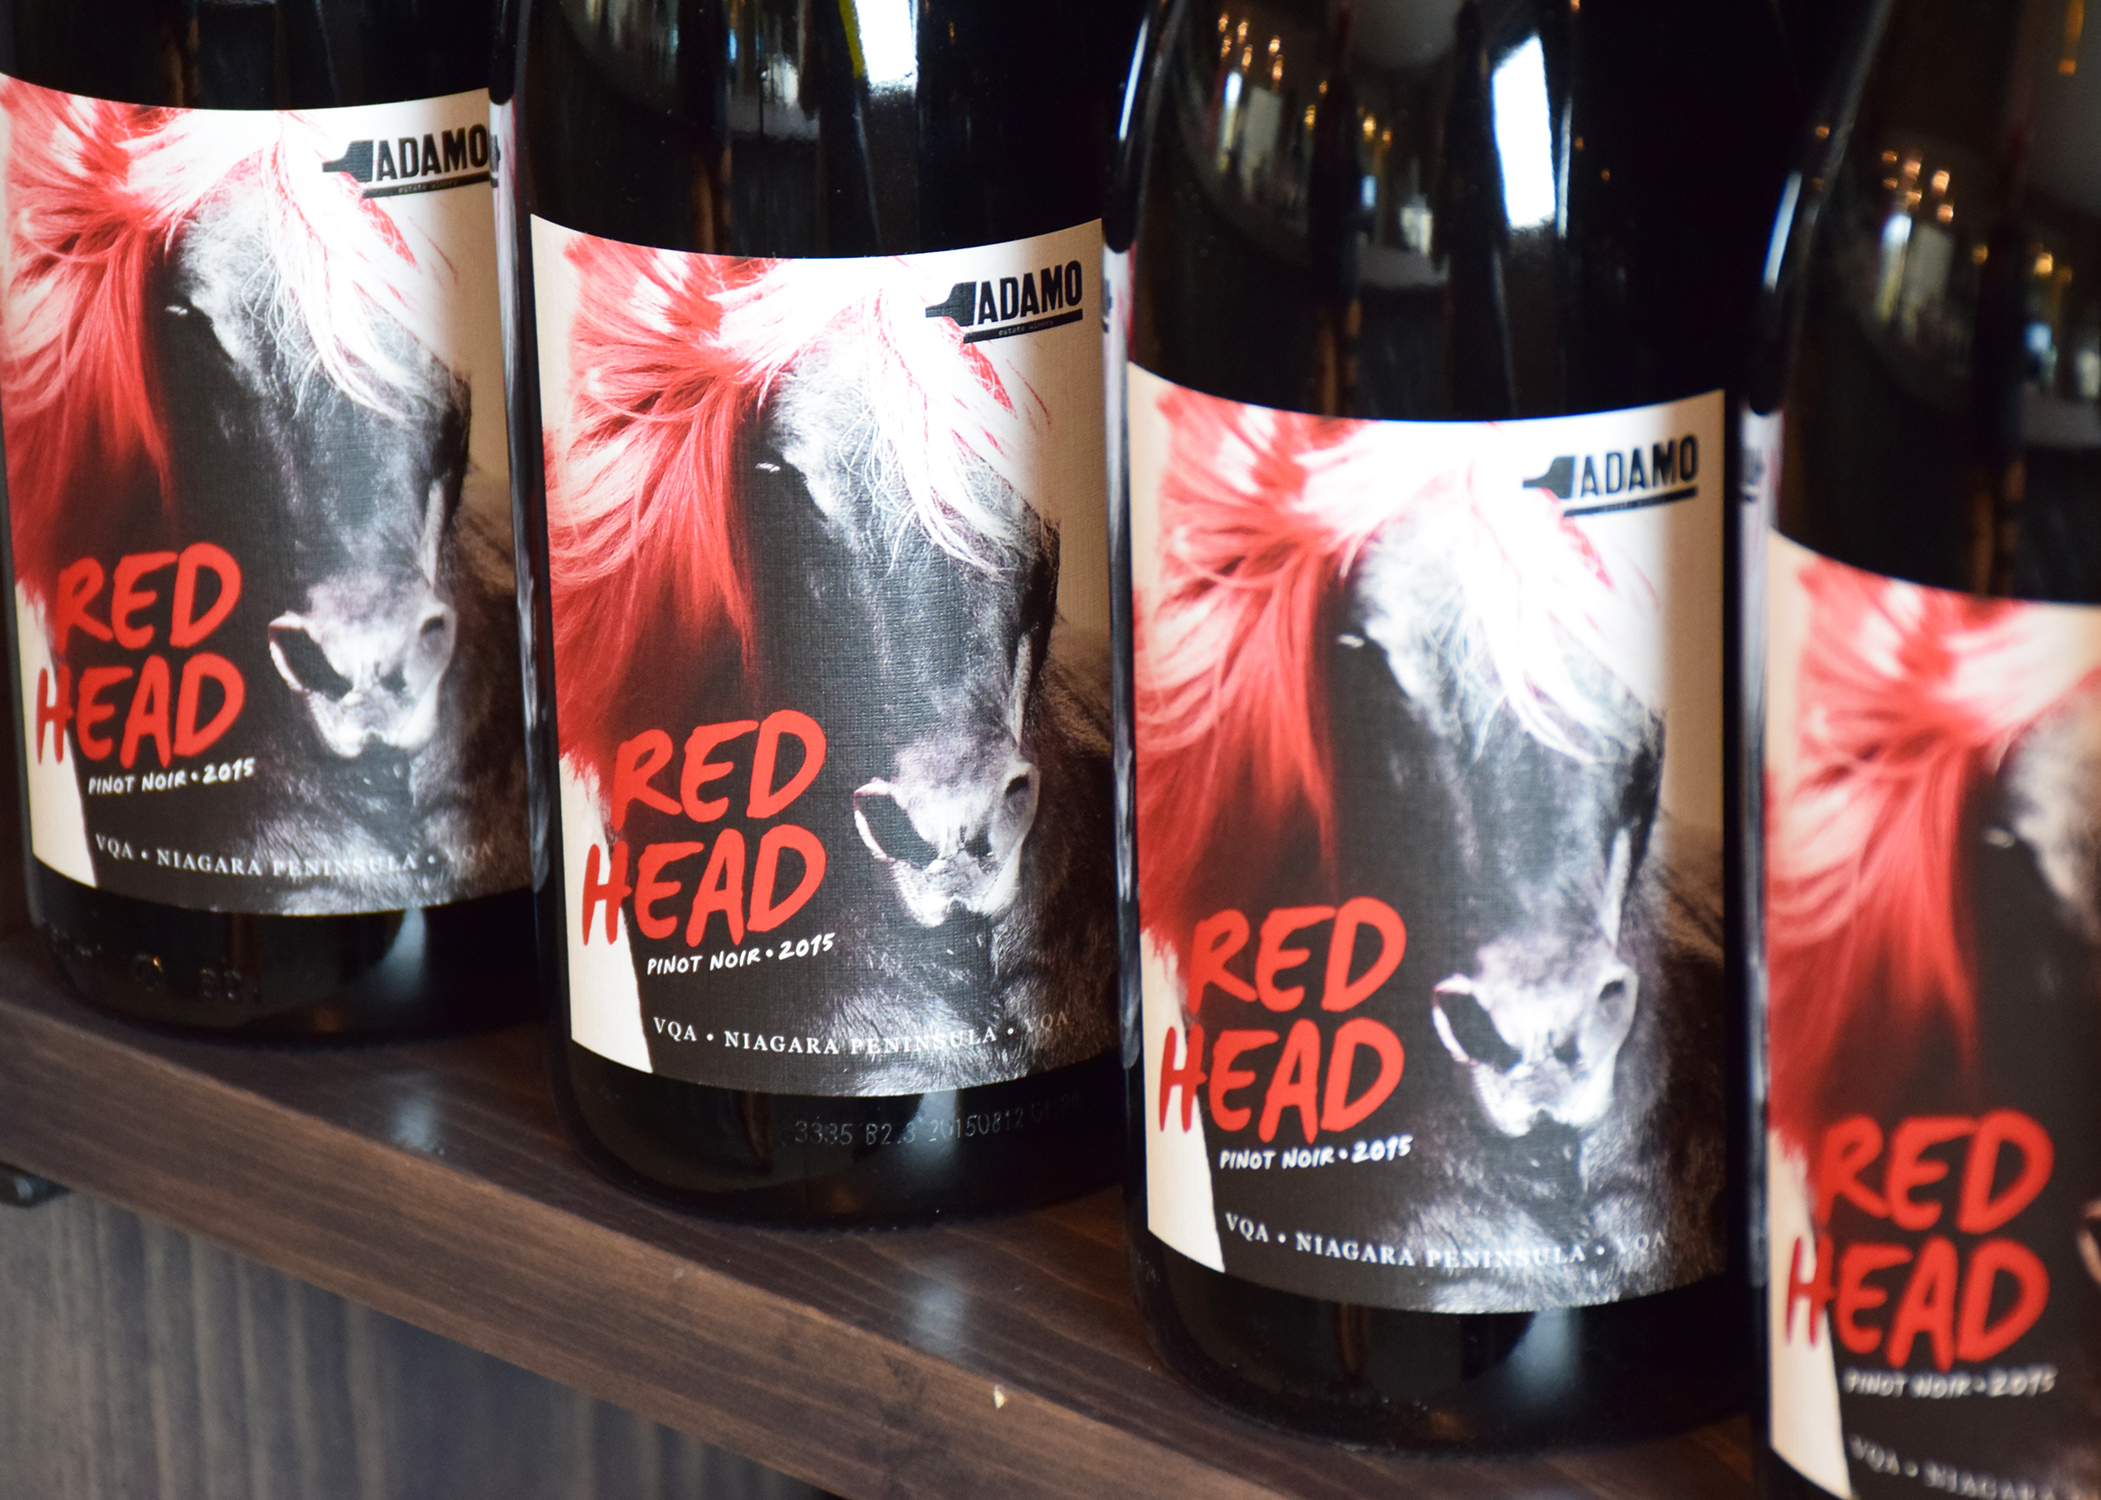 Wine Profile: 2015 Red Head Pinot Noir